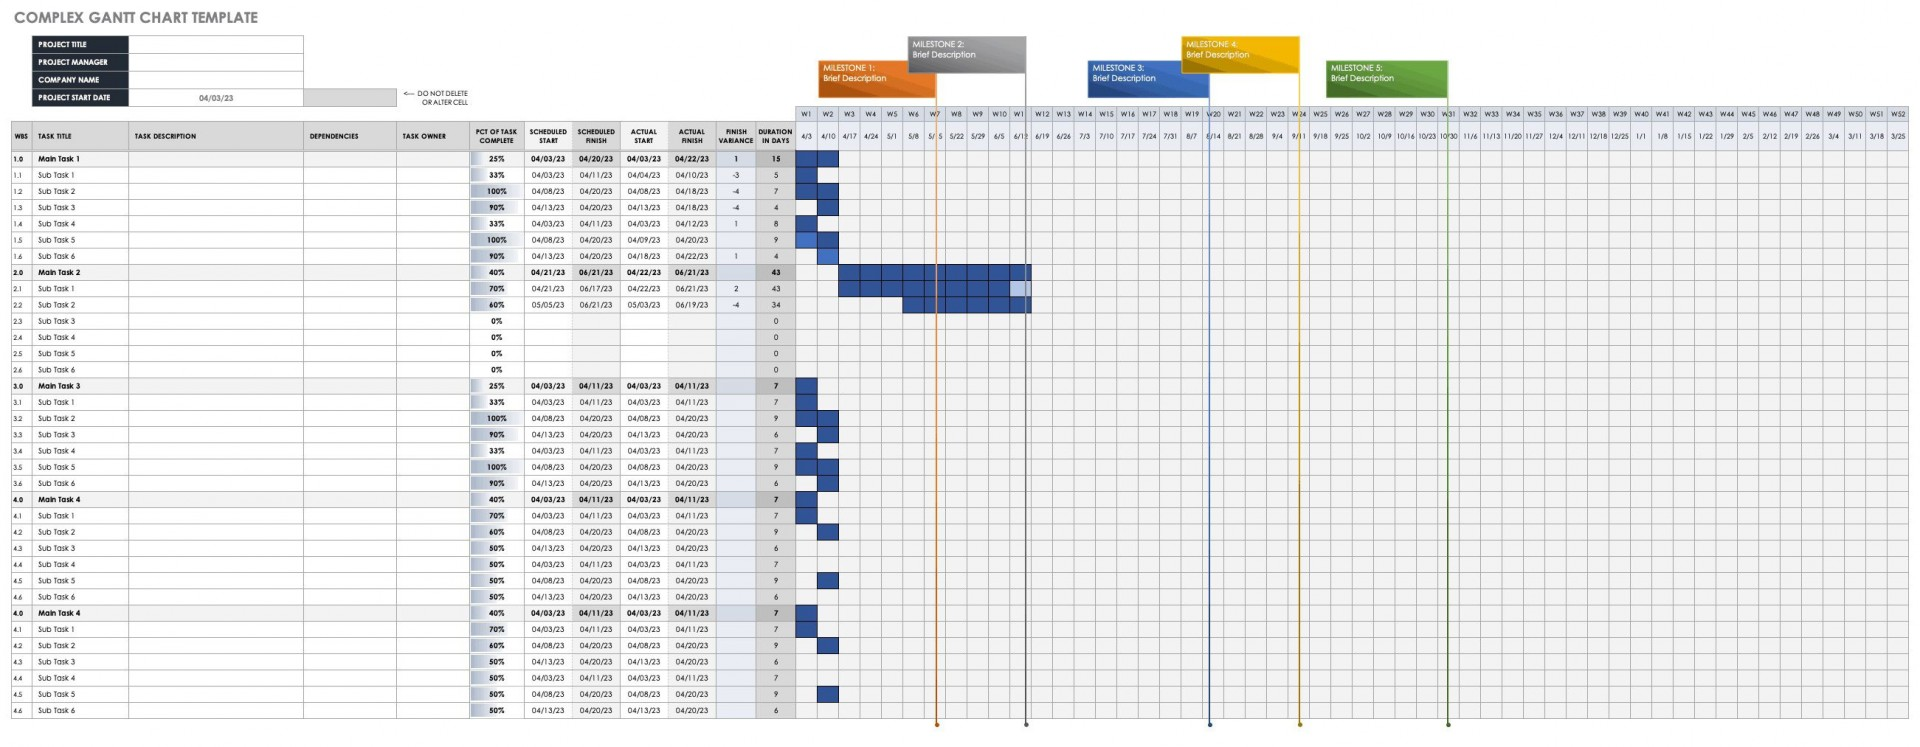 006 Fantastic Microsoft Excel Gantt Chart Template Photo  Project Planner In Simple Free Download1920